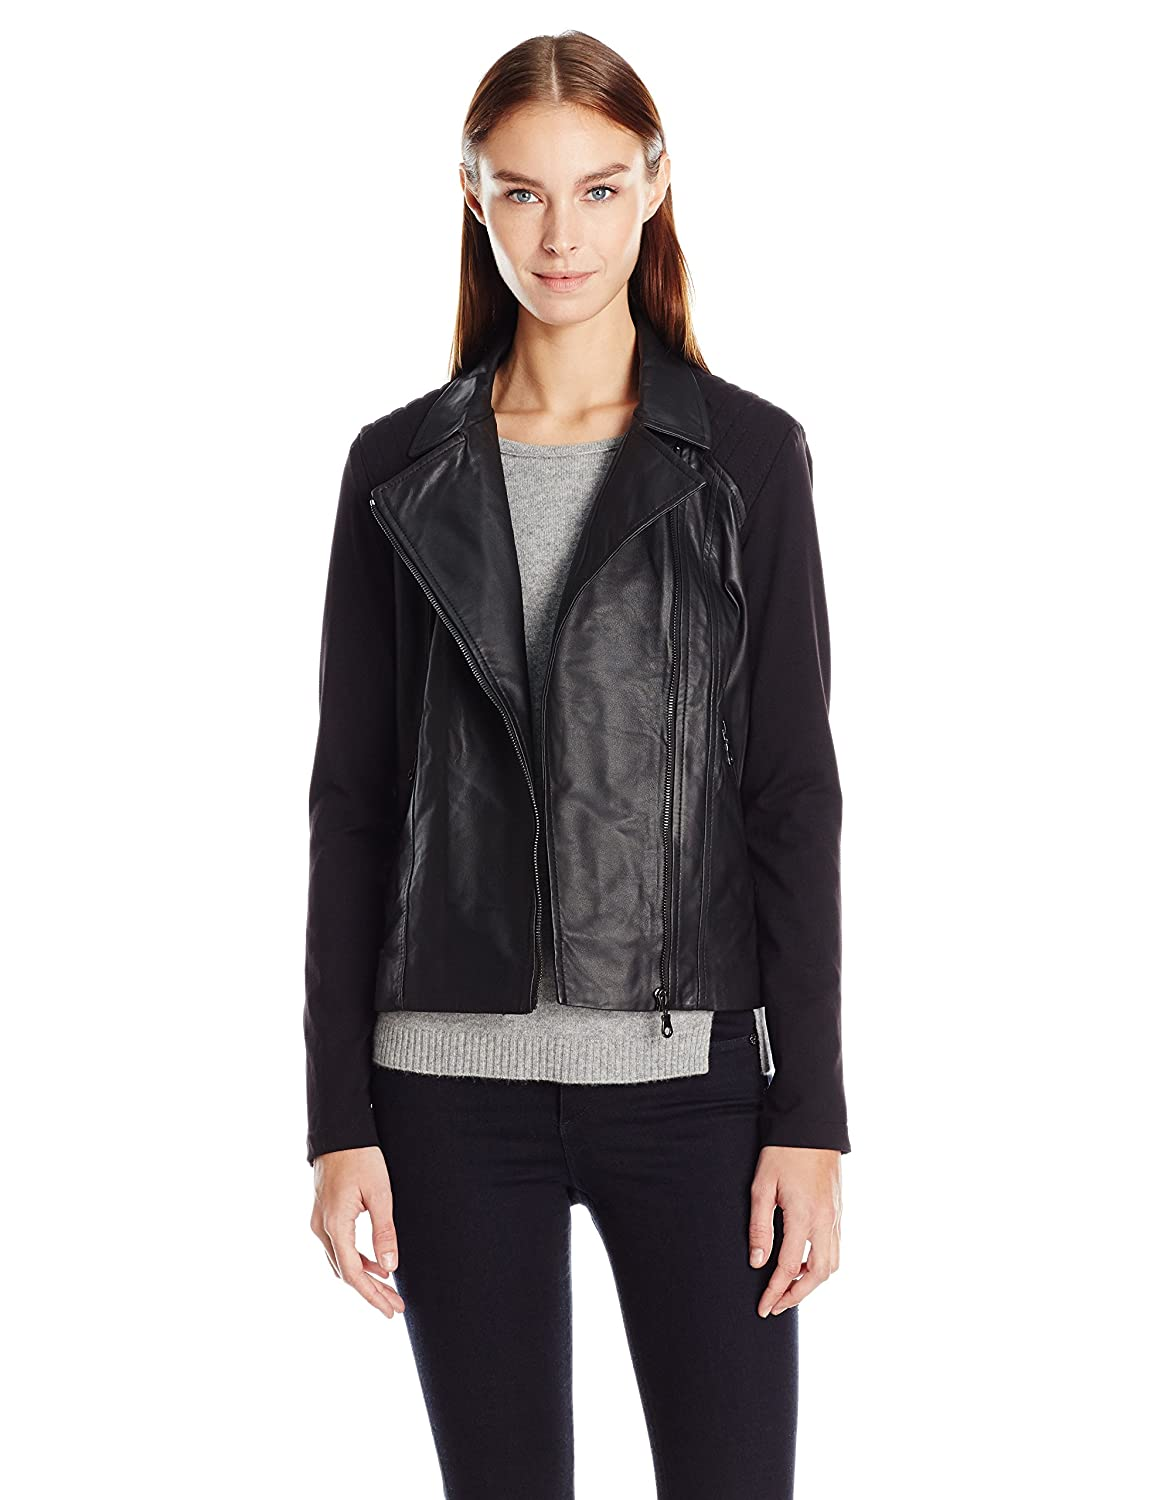 David Lerner Women's Motorcycle Jacket DAJ0064